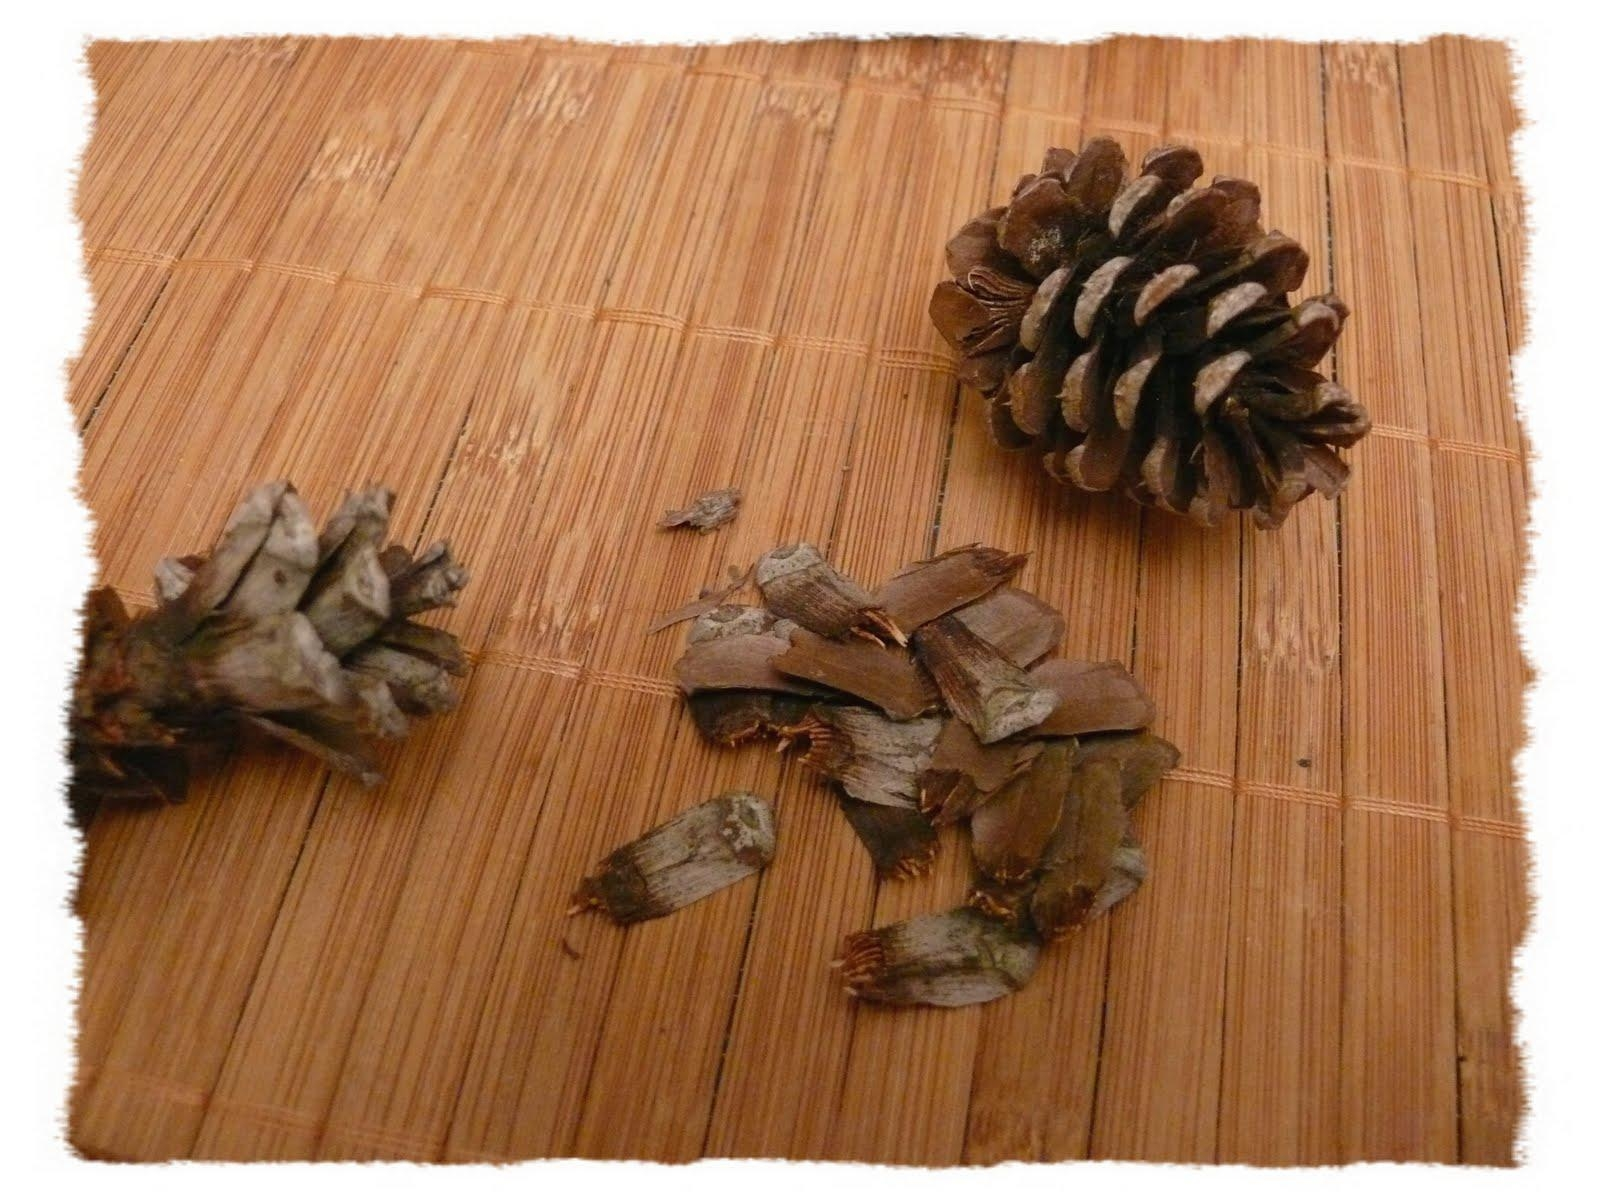 Easy Pine Cone Wall Art | Happy Hodgepodge Home Throughout Pine Cone Wall Art (Image 9 of 20)